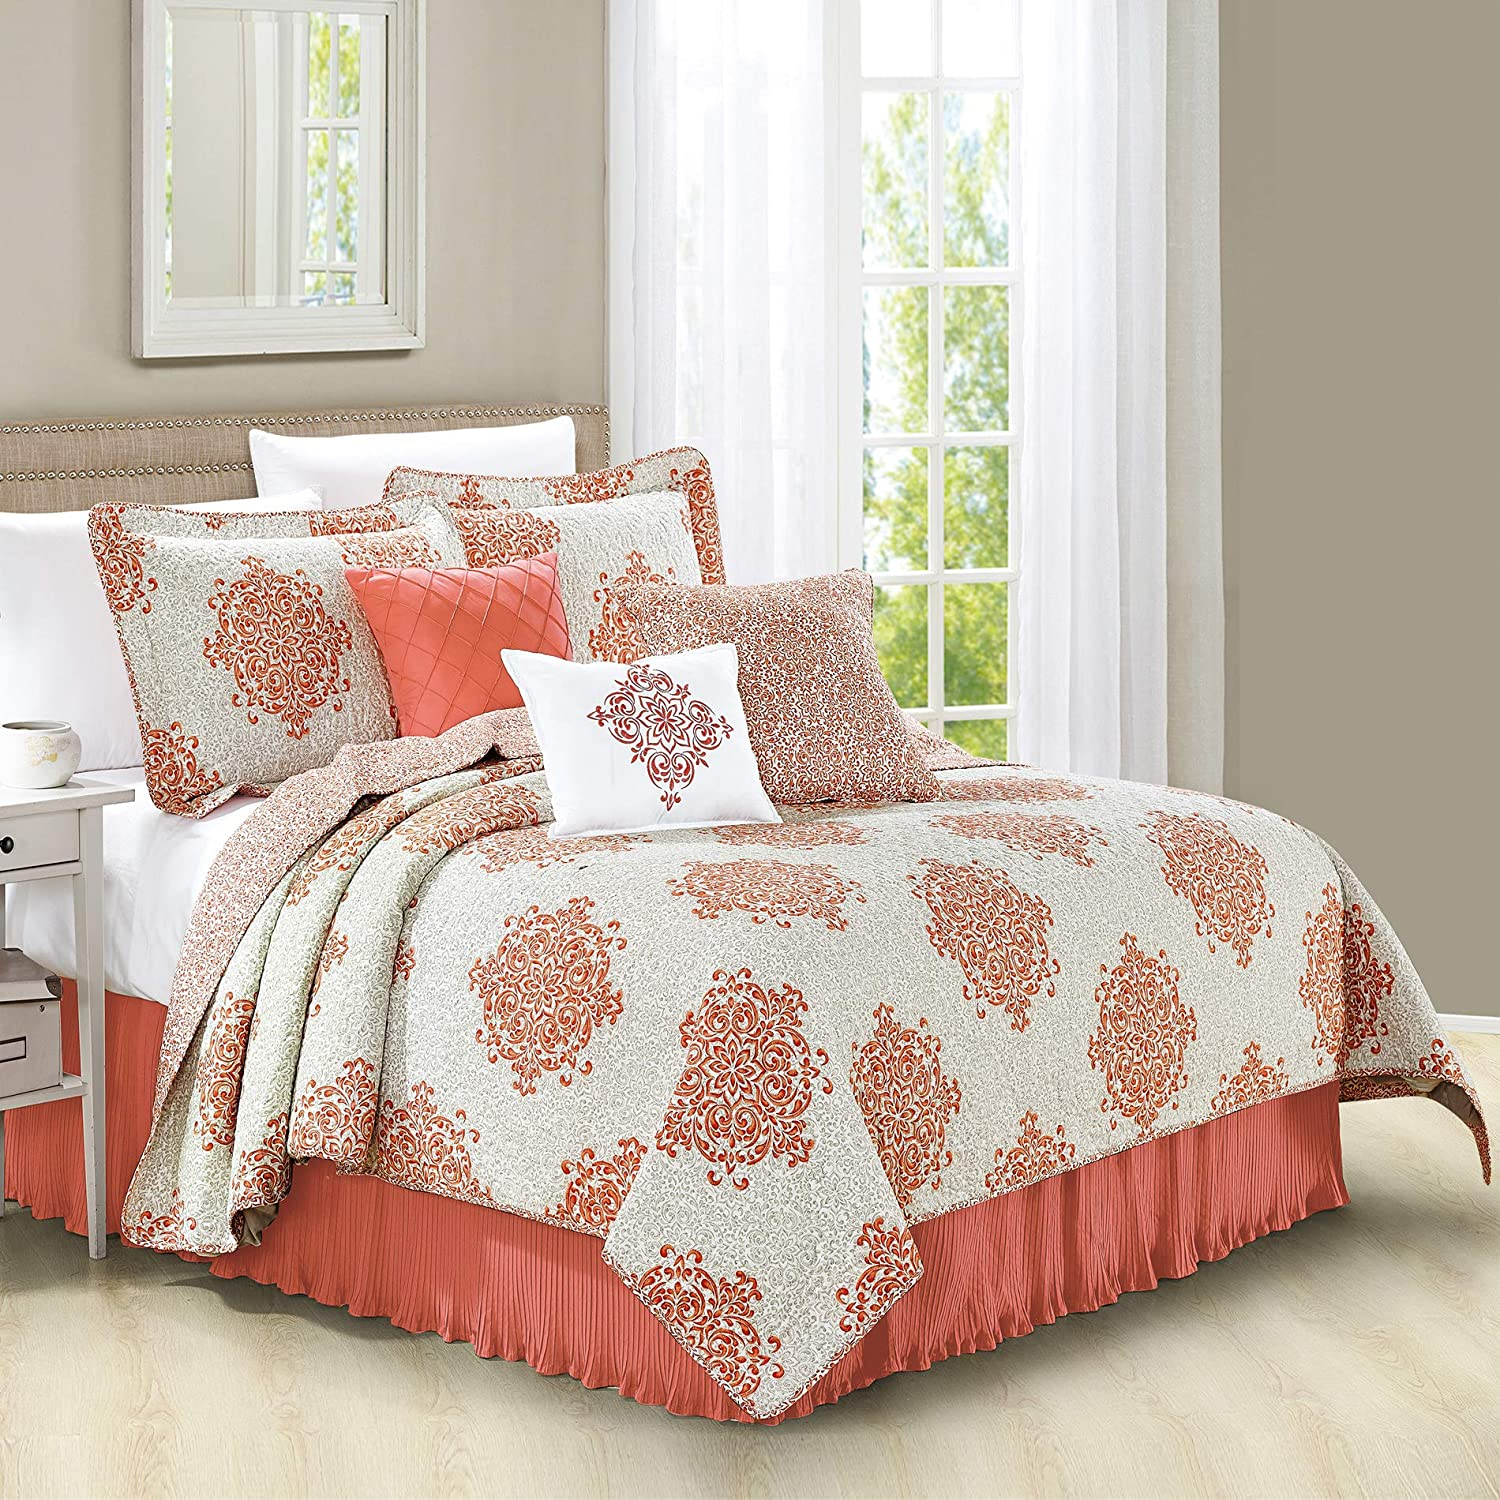 Home Soft Things Serenta 6 Piece Chelsea Printed Microfiber Quilts Coverlet Set, King, Coral